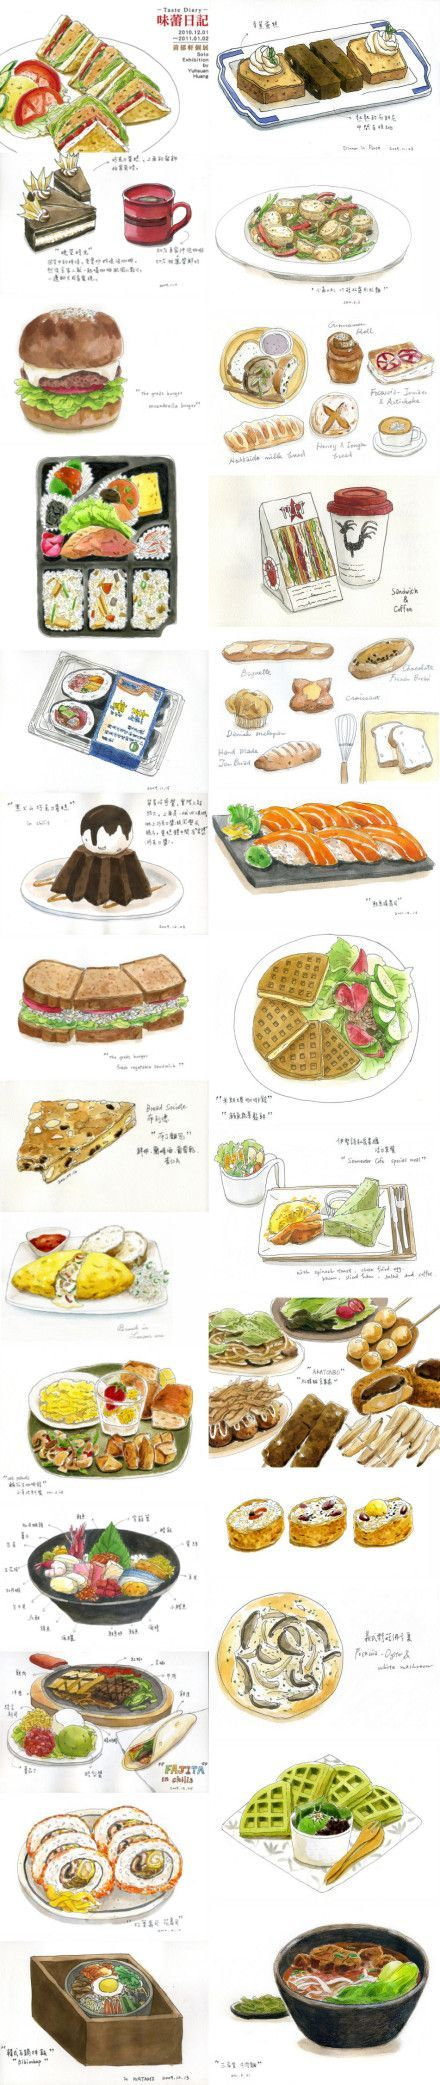 Food illustration - artist study , How to Draw Food, Artist Study Resources for Art Students, CAPI ::: Create Art Portfolio Ideas at milliande.com , Inspiration for Art School Portfolio Work, Food, Drawing Food, Sketching, Painting, Art Journal, Journaling, illustration